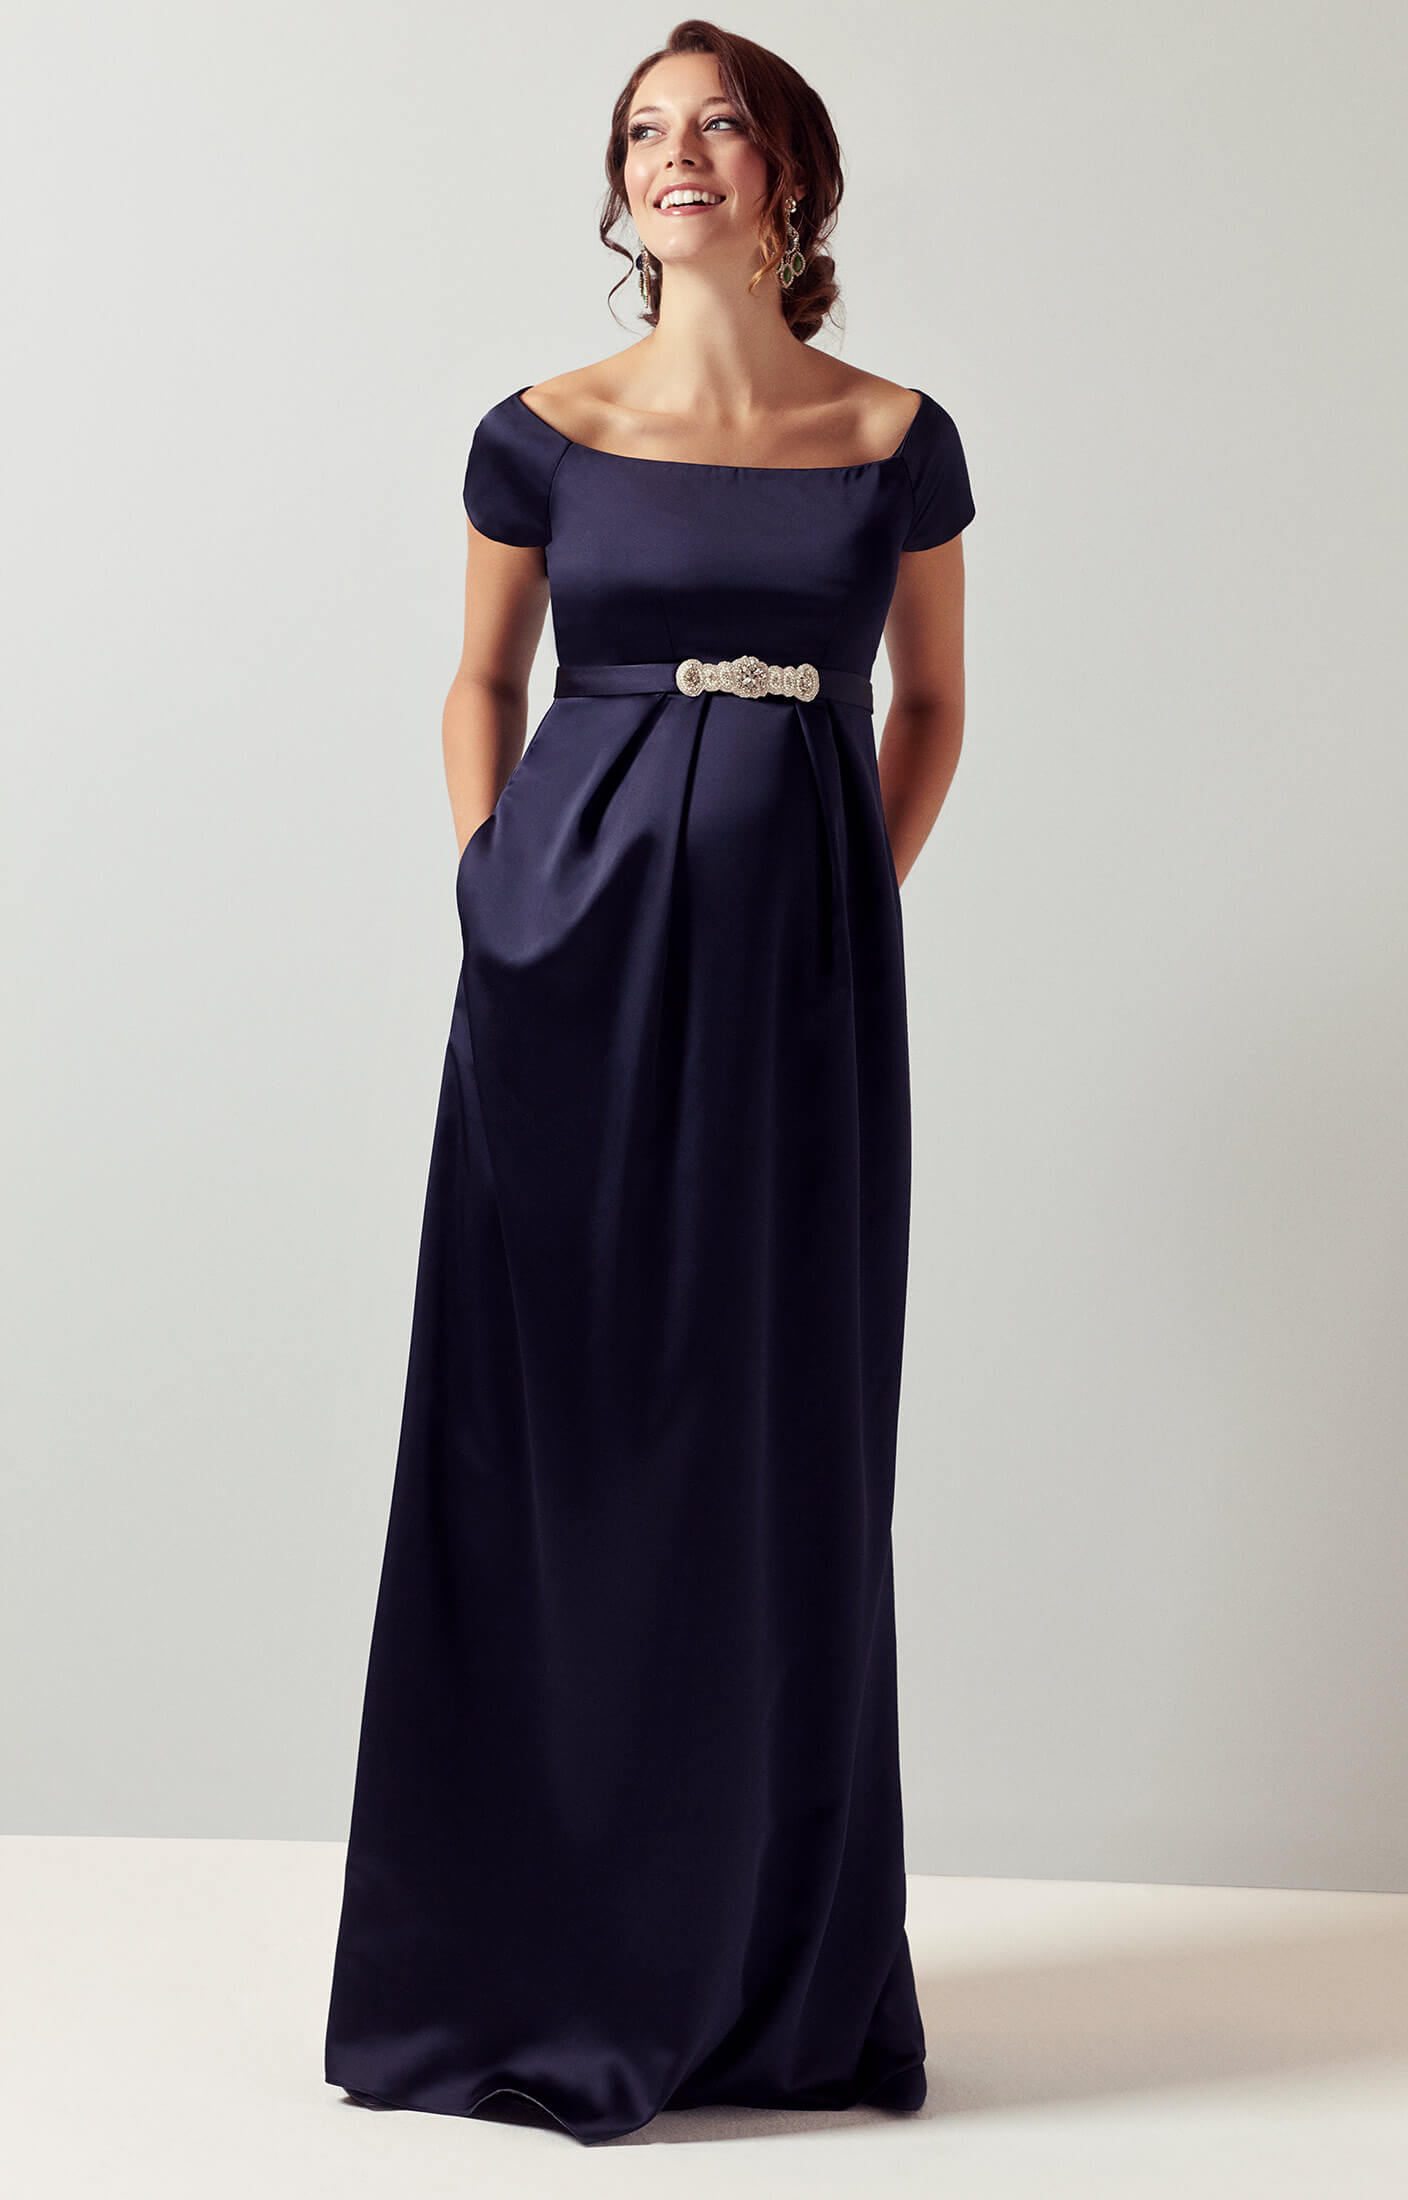 Aria Maternity Gown Midnight Blue - Maternity Wedding Dresses ...